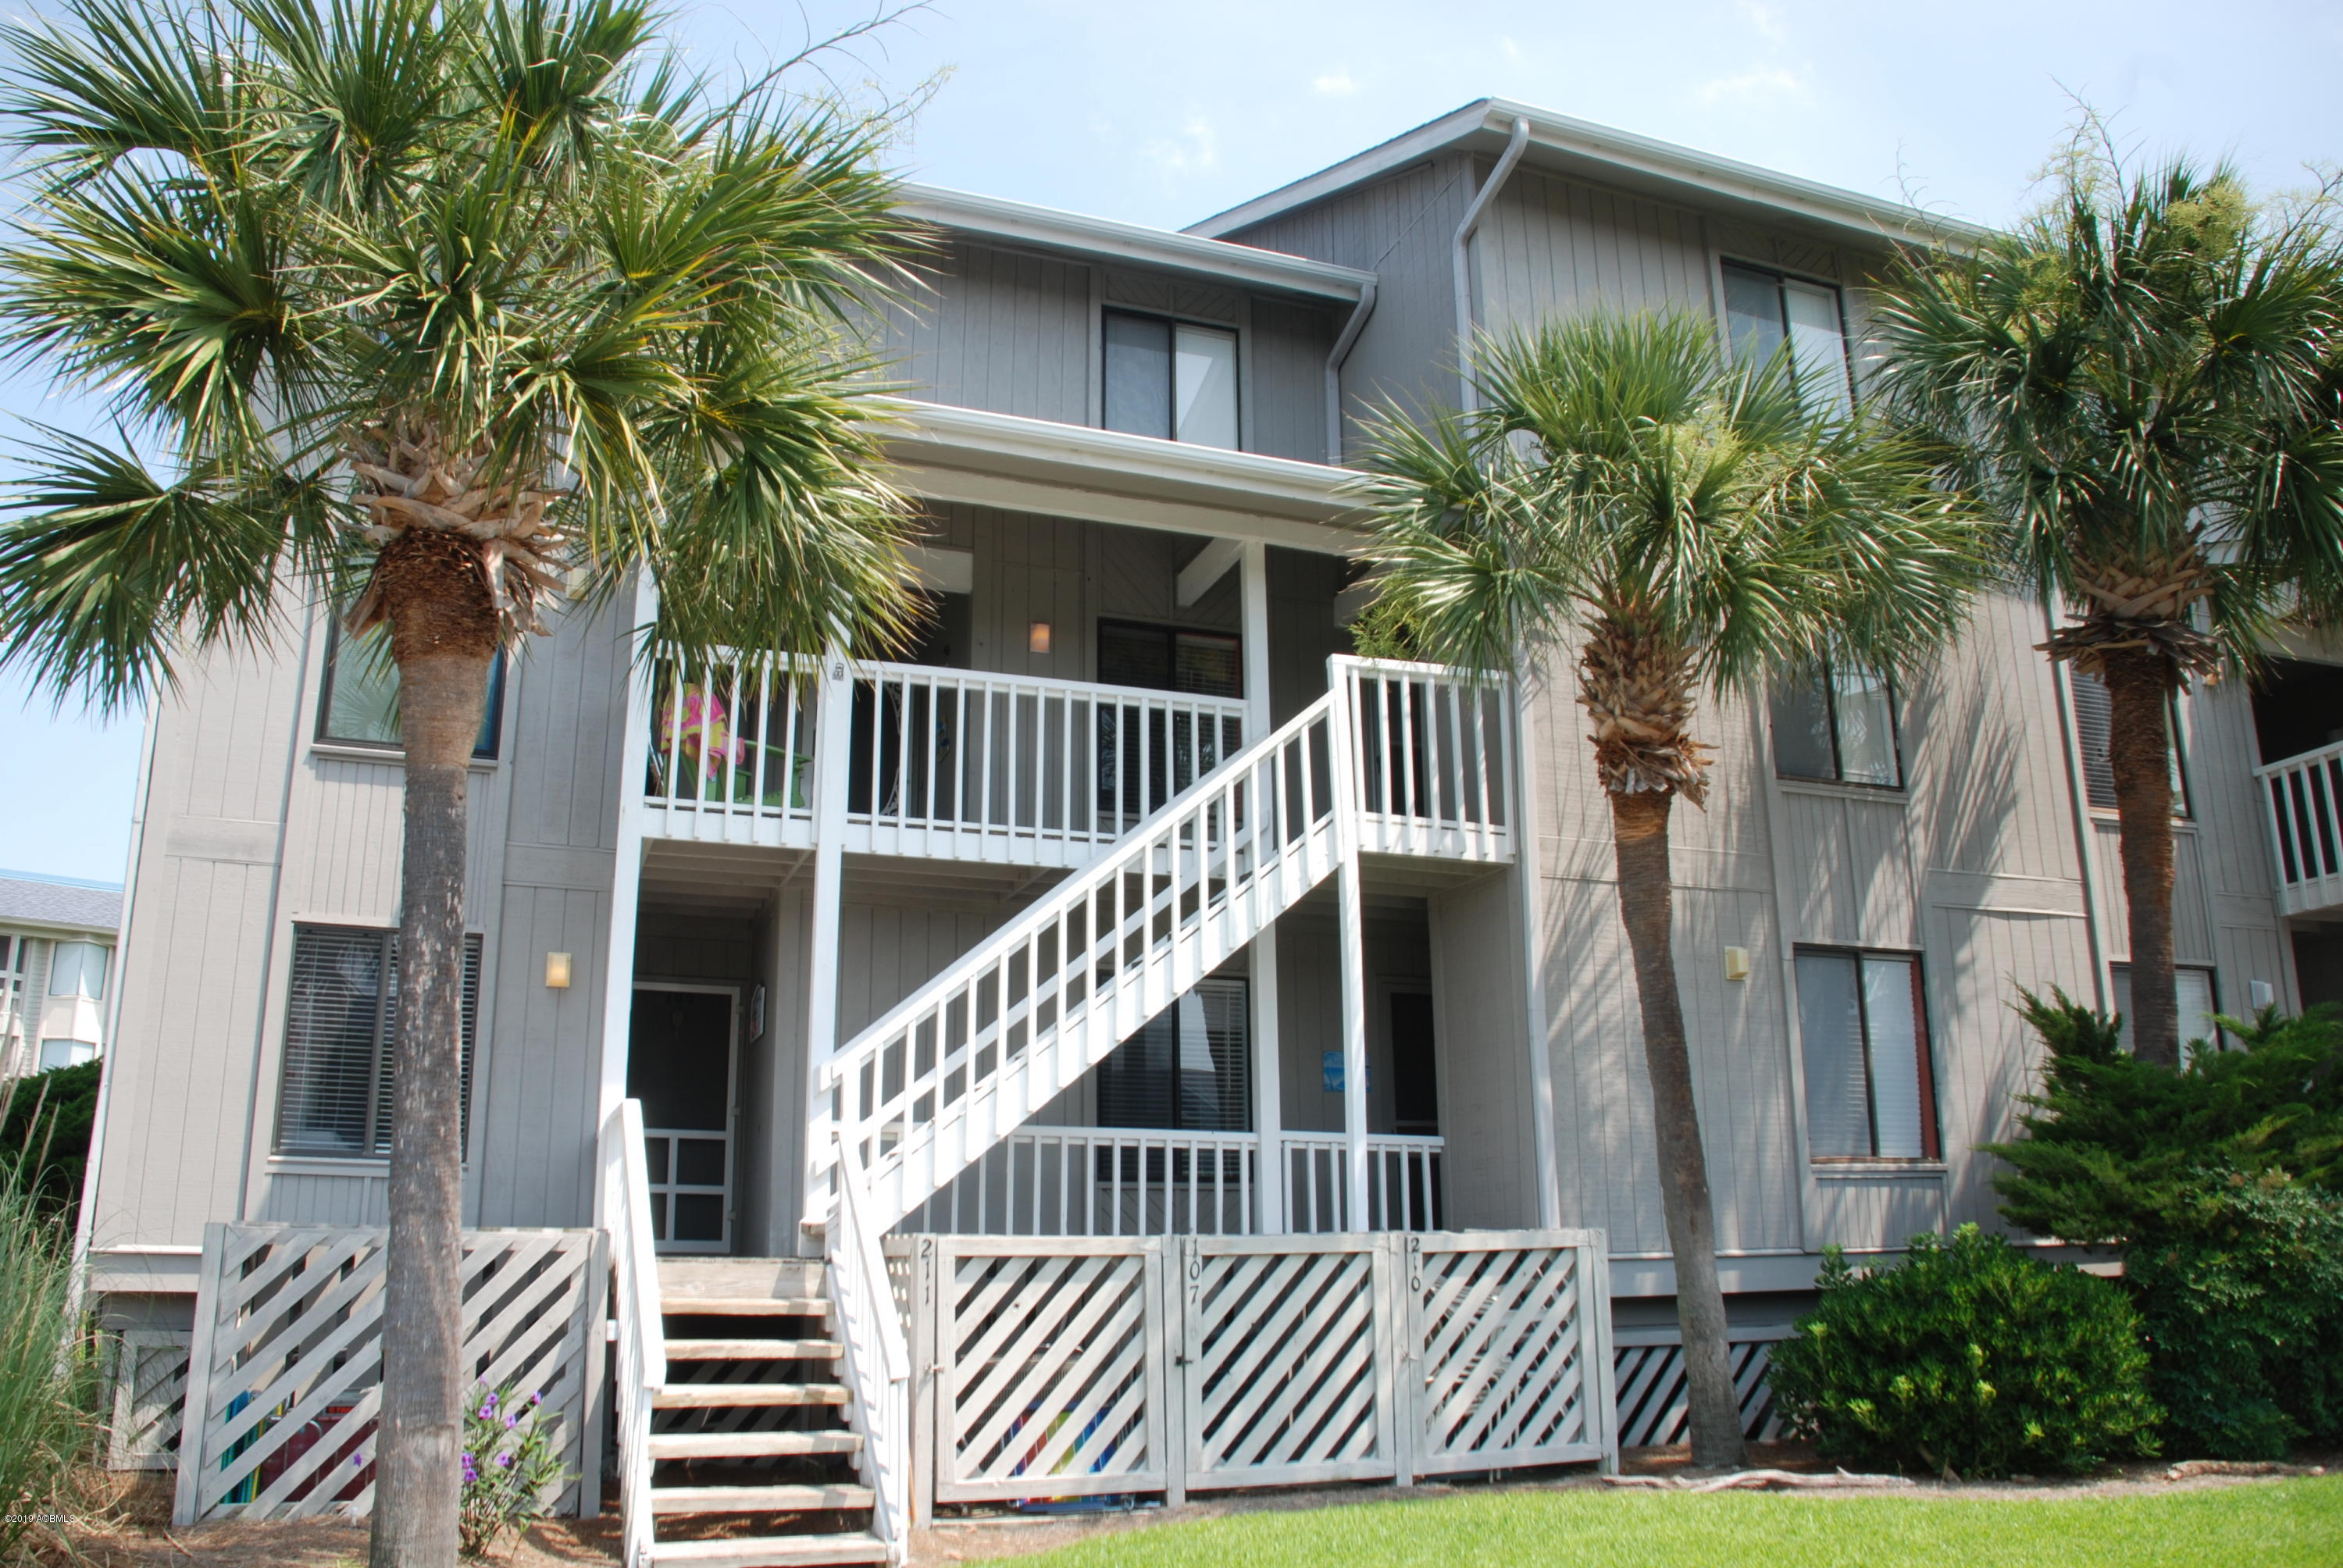 Photo of 2 Cedar Reef Drive #E210, Harbor Island, SC 29920